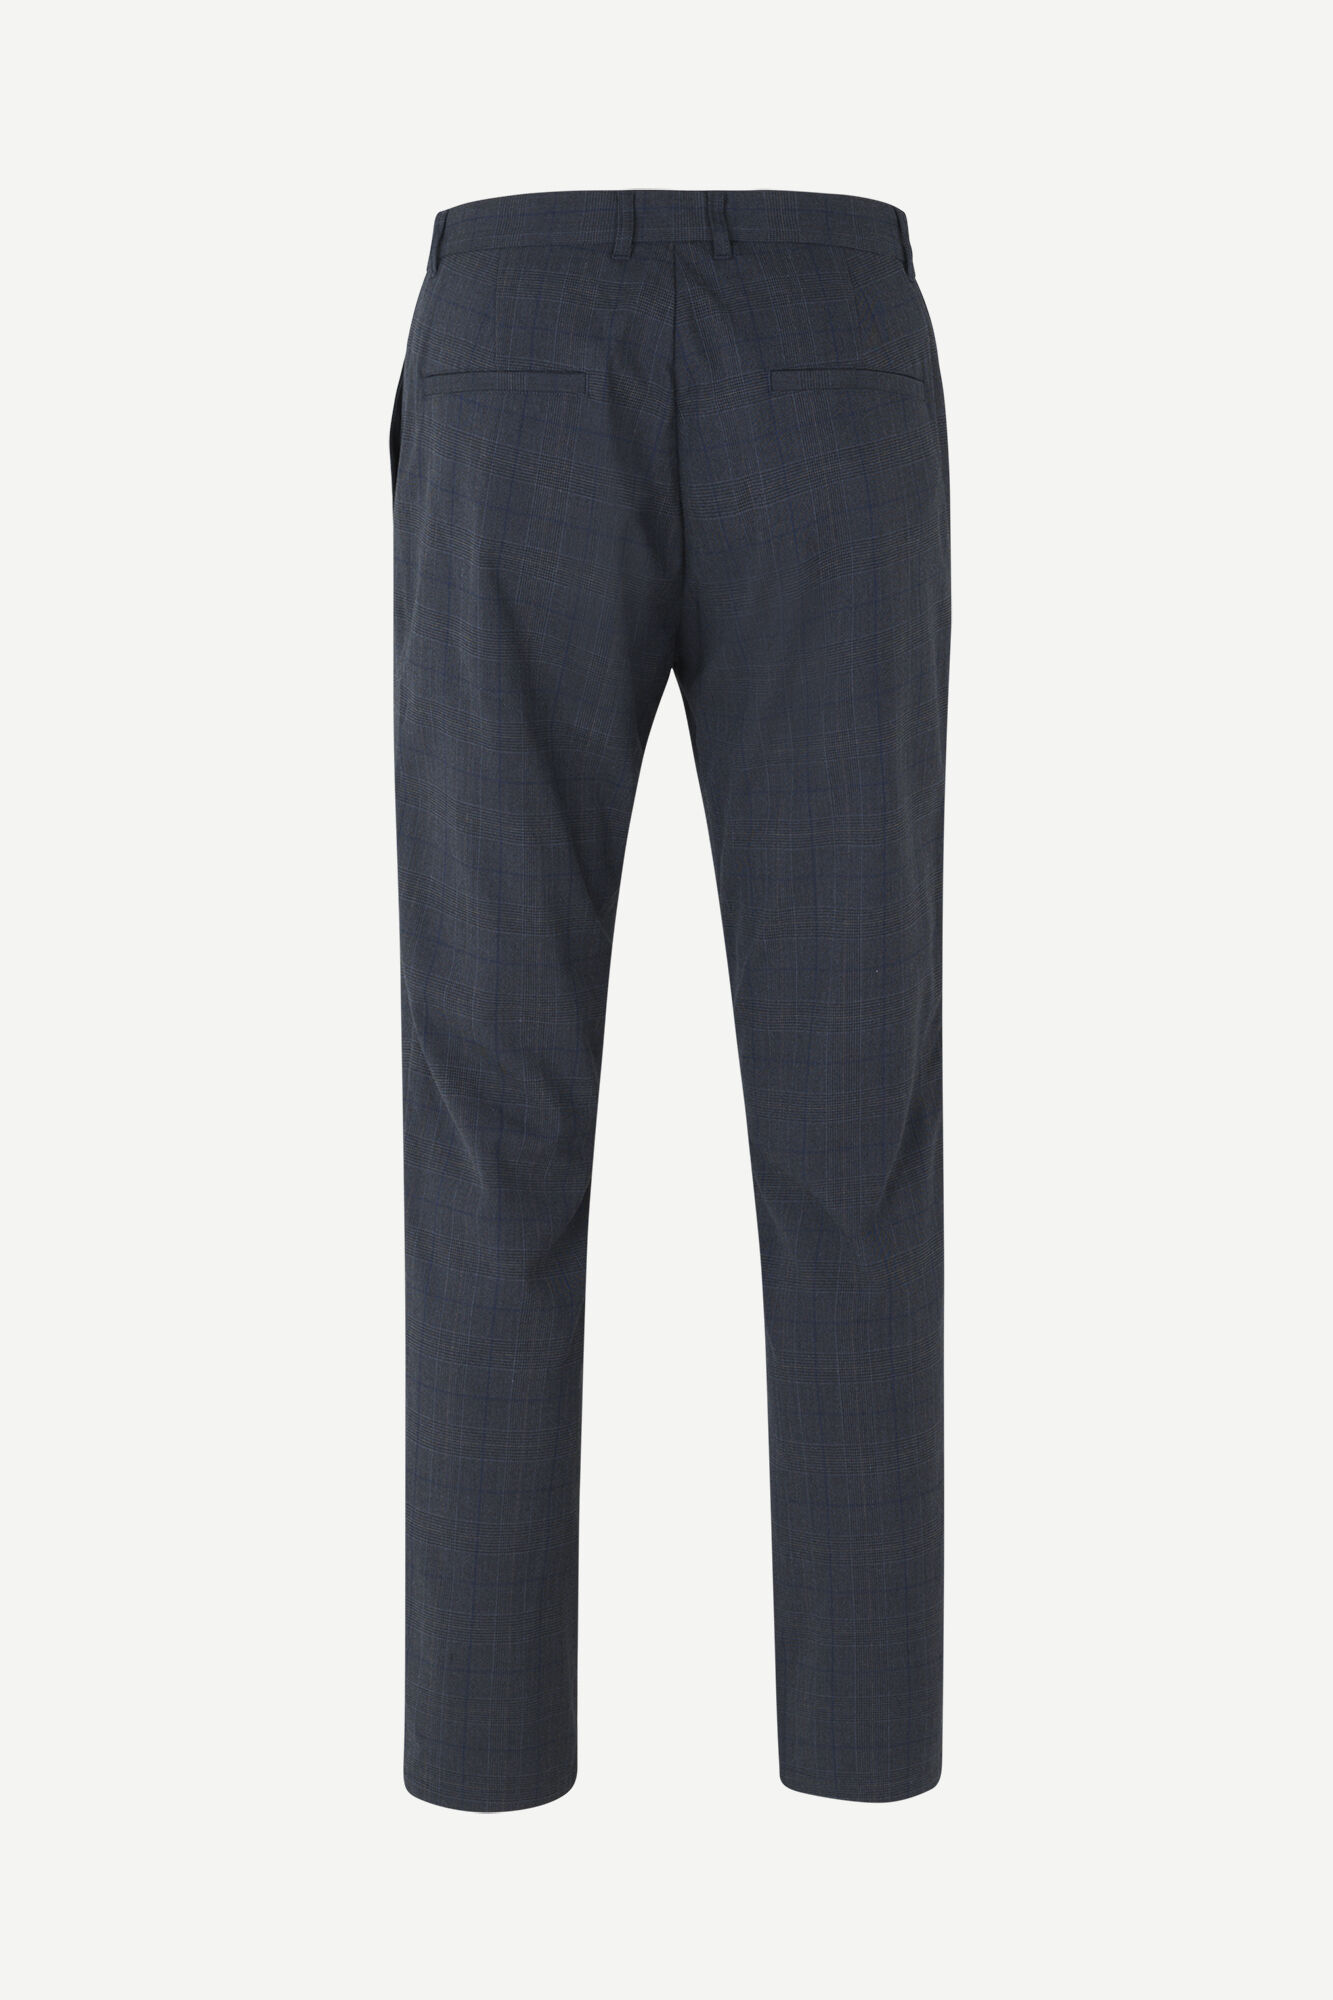 Frankie trousers 11538, NIGHT SKY CH.